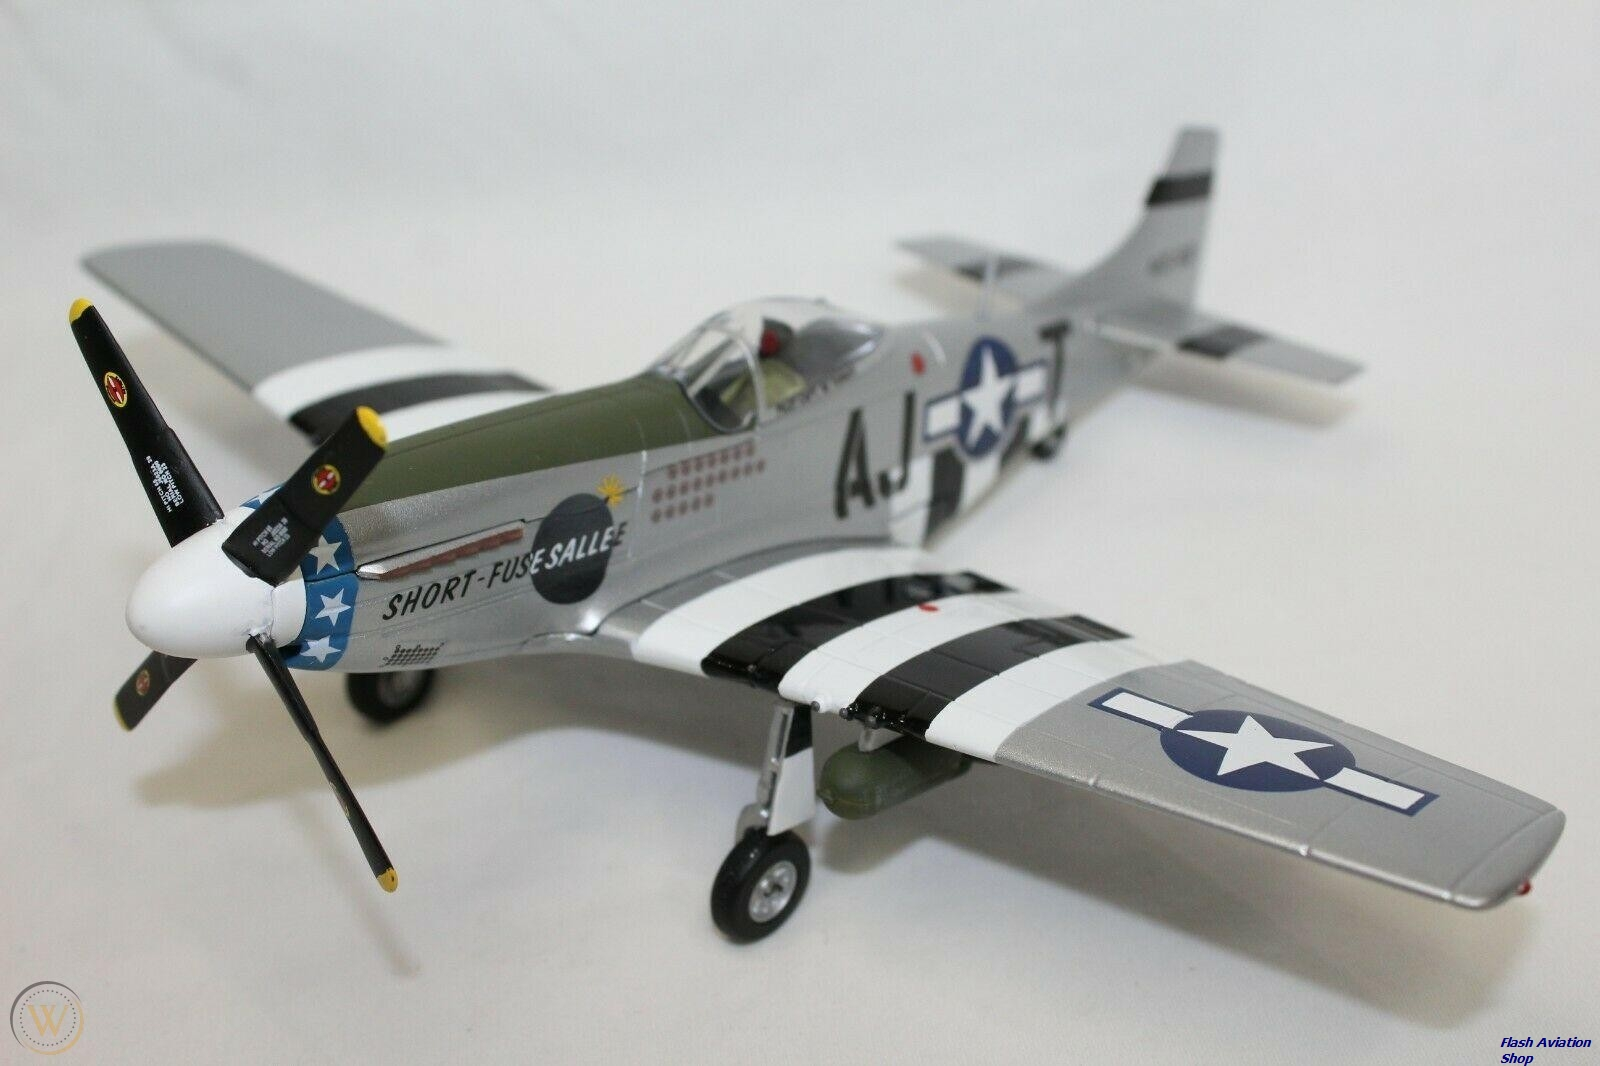 Image not found :(98074) P-51 Mustang 'Short Fuse Sallee', USAAF